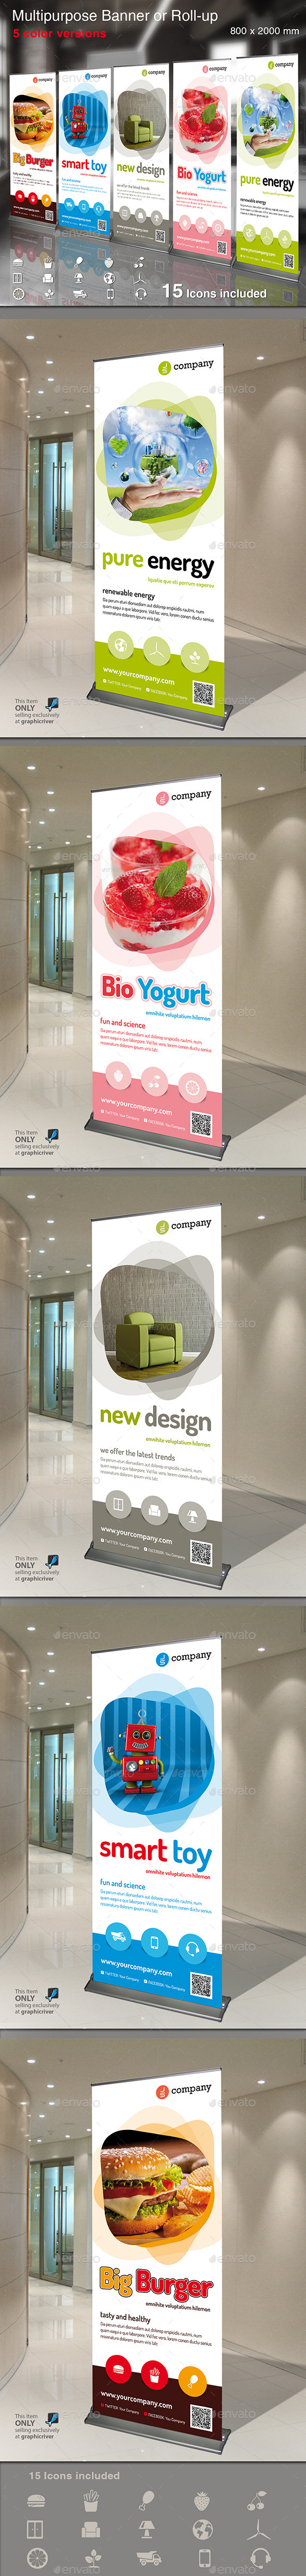 Multipurpose Banner or Rollup - Signage Print Templates